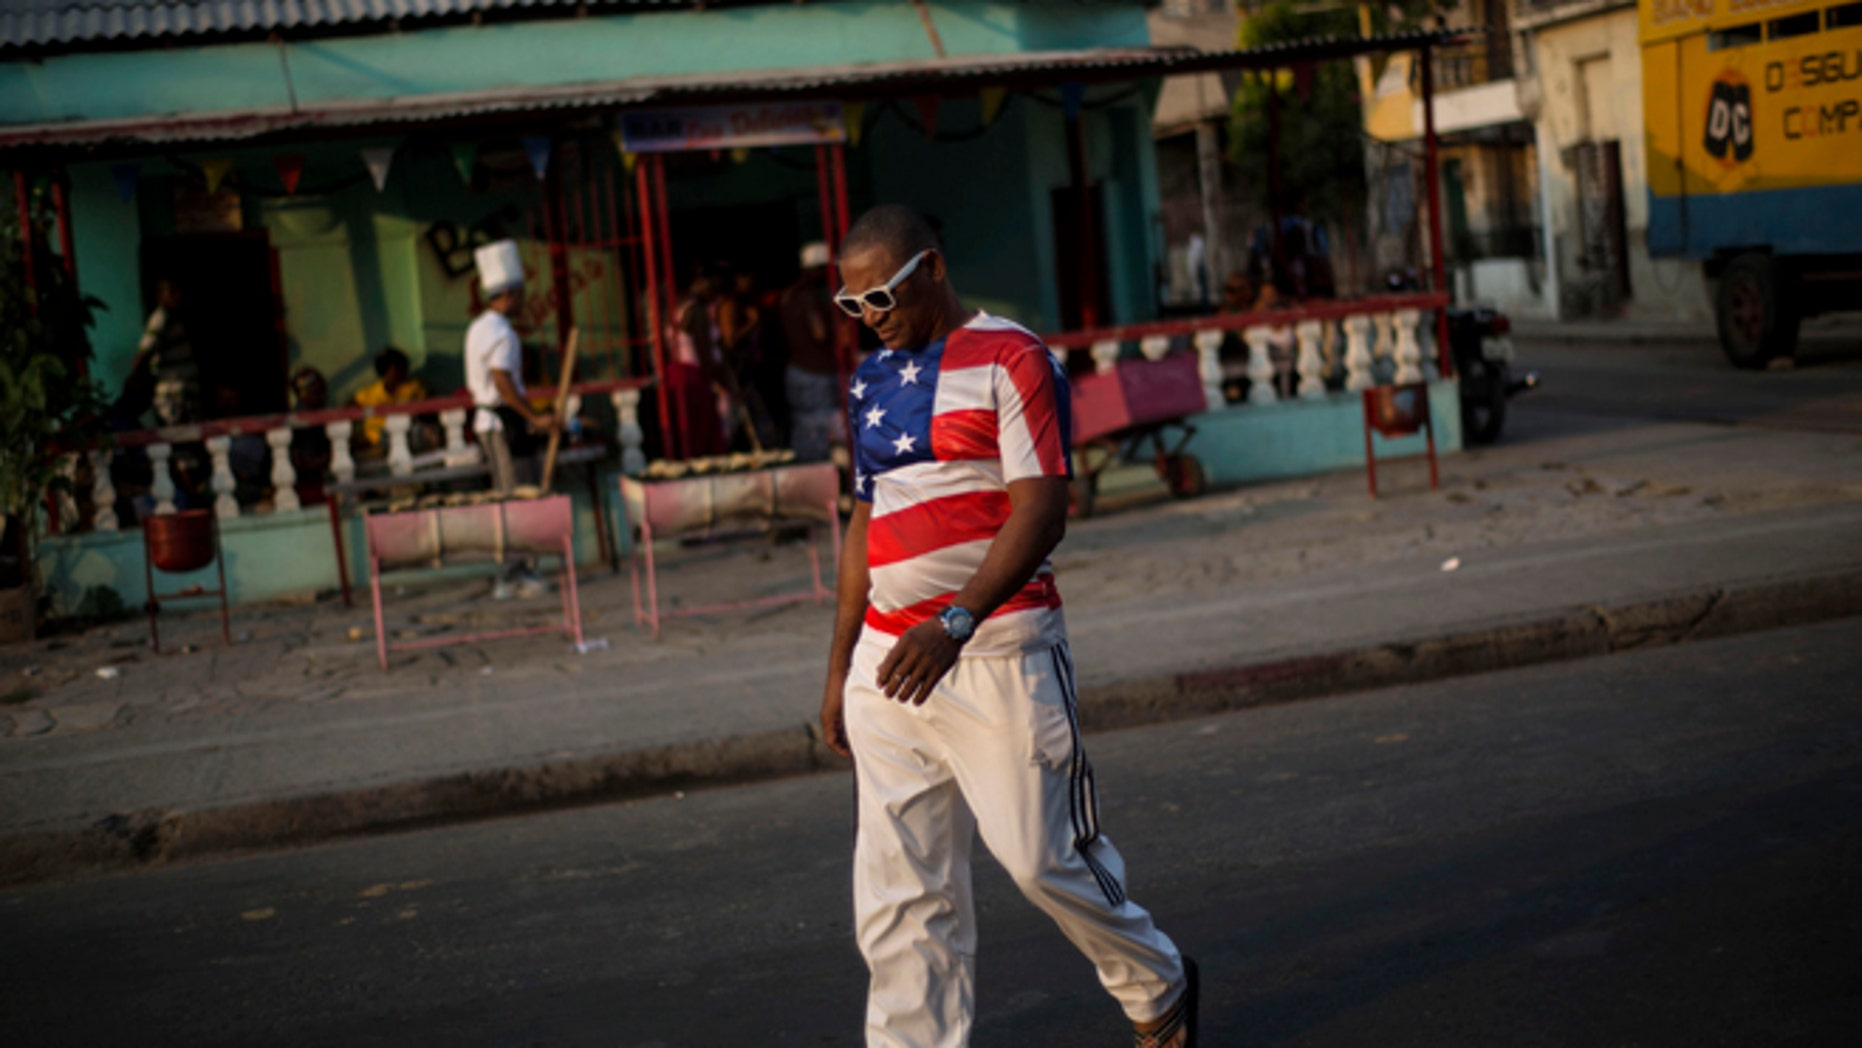 In this March 21, 2015 photo, a man wears a shirt with a U.S. flag design in Santiago, Cuba. Its easier to get from Havana to Miami than to the islands second-largest city, which has just two overbooked flights a day and trains that are achingly slow and unpredictable. (AP Photo/Ramon Espinosa)